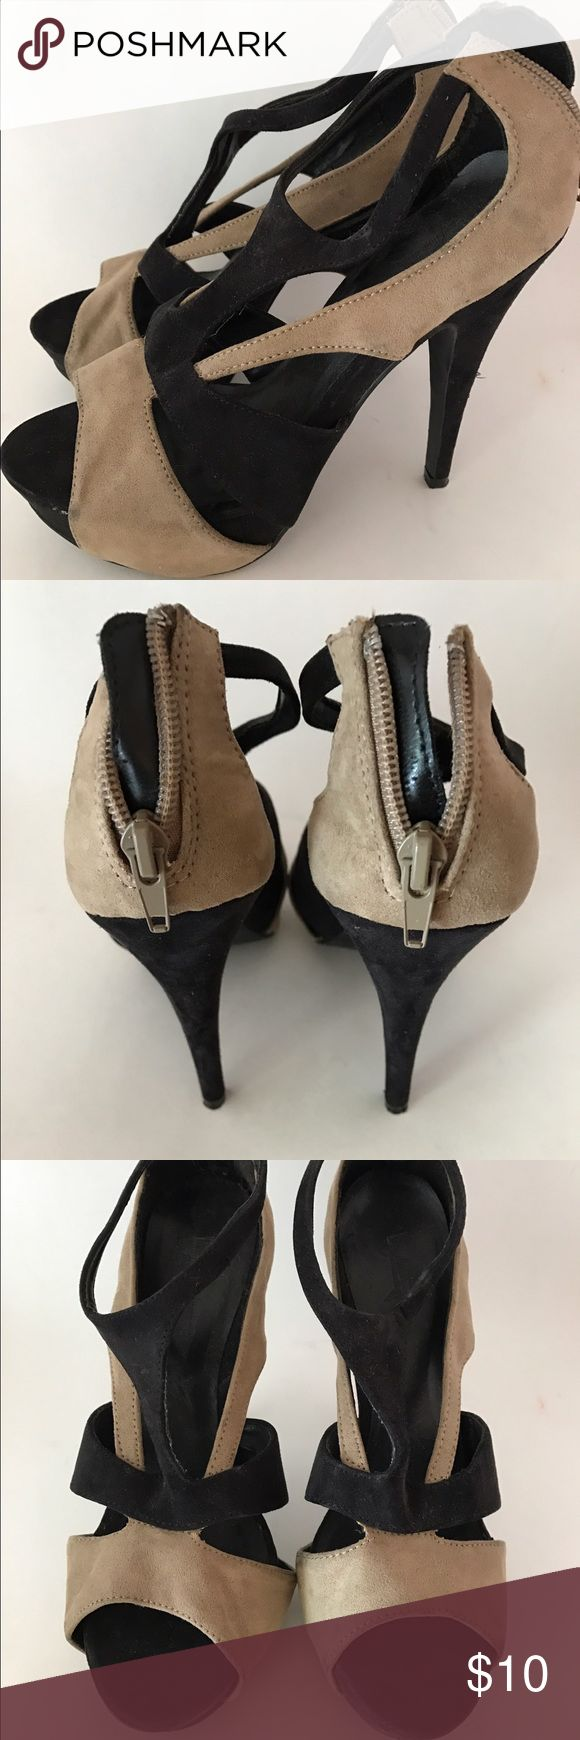 Strappy Black and Tan High Heel - size 7 These are fun! Strappy black and tan high heels from Forever 21 - size 7 - used, but in great condition- rear ankle zipper Forever 21 Shoes Heels